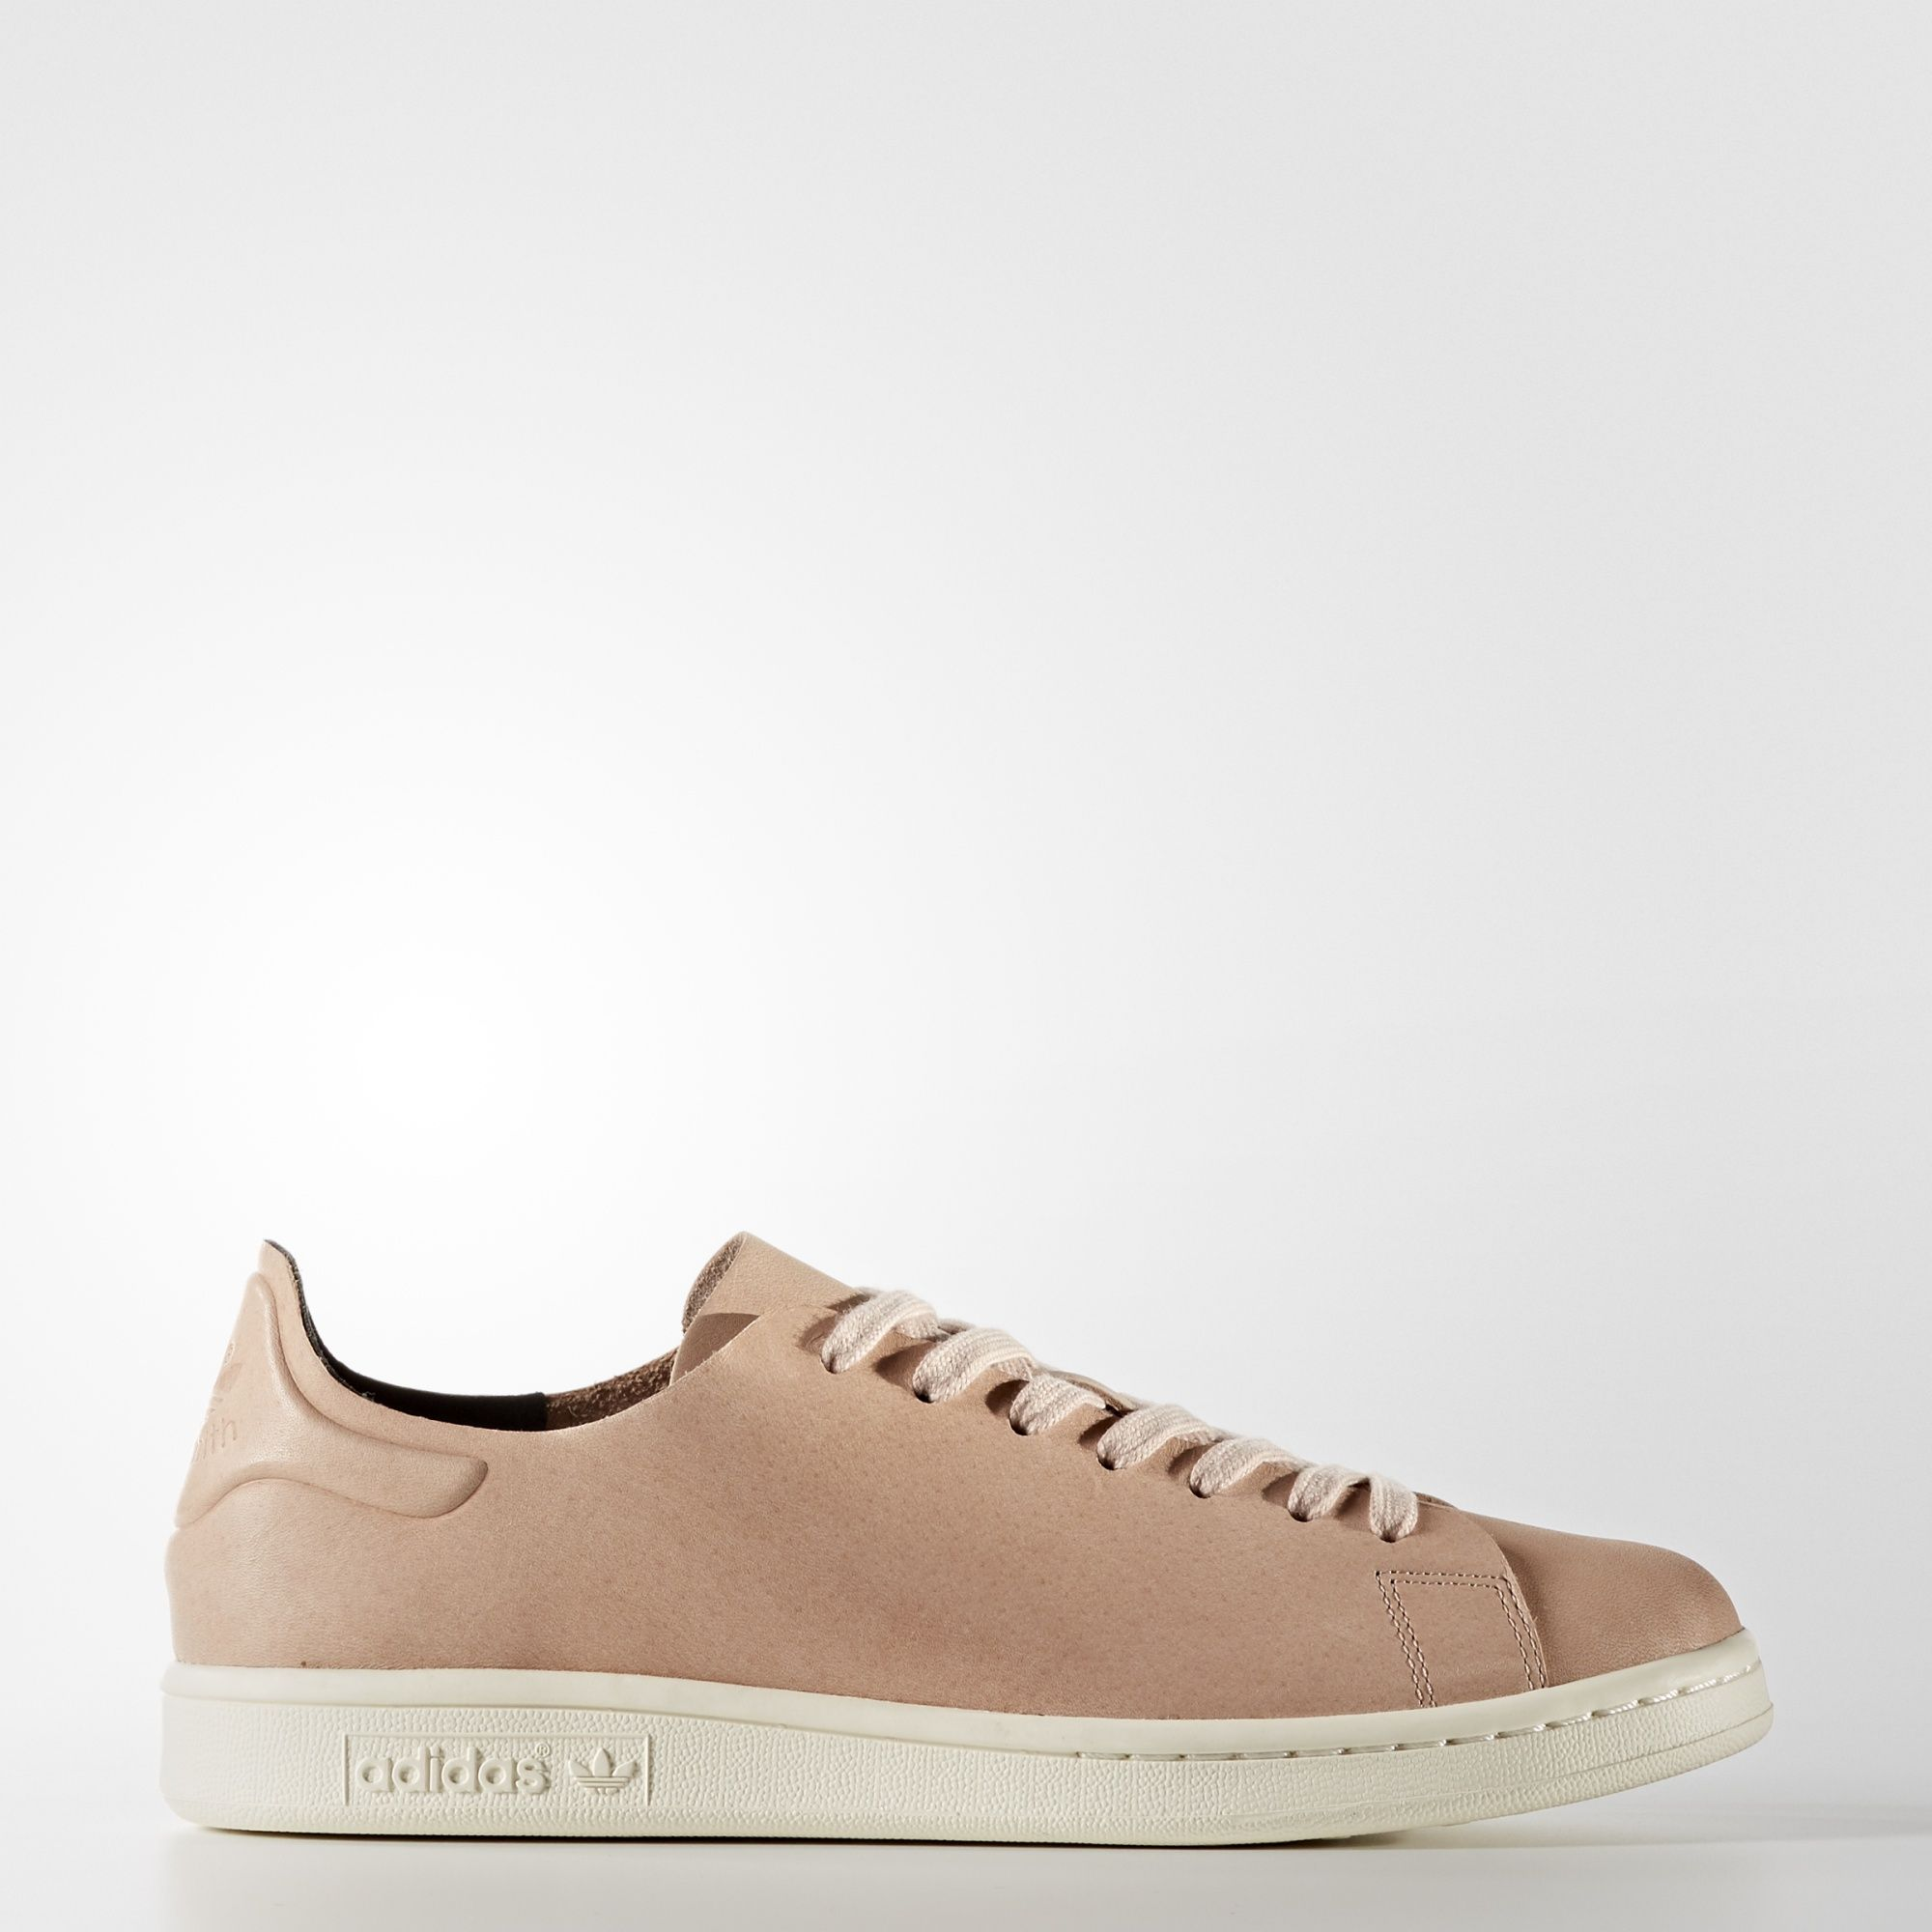 adidas hoodies sale, Adidas stan smith cfi baby shoes outlet